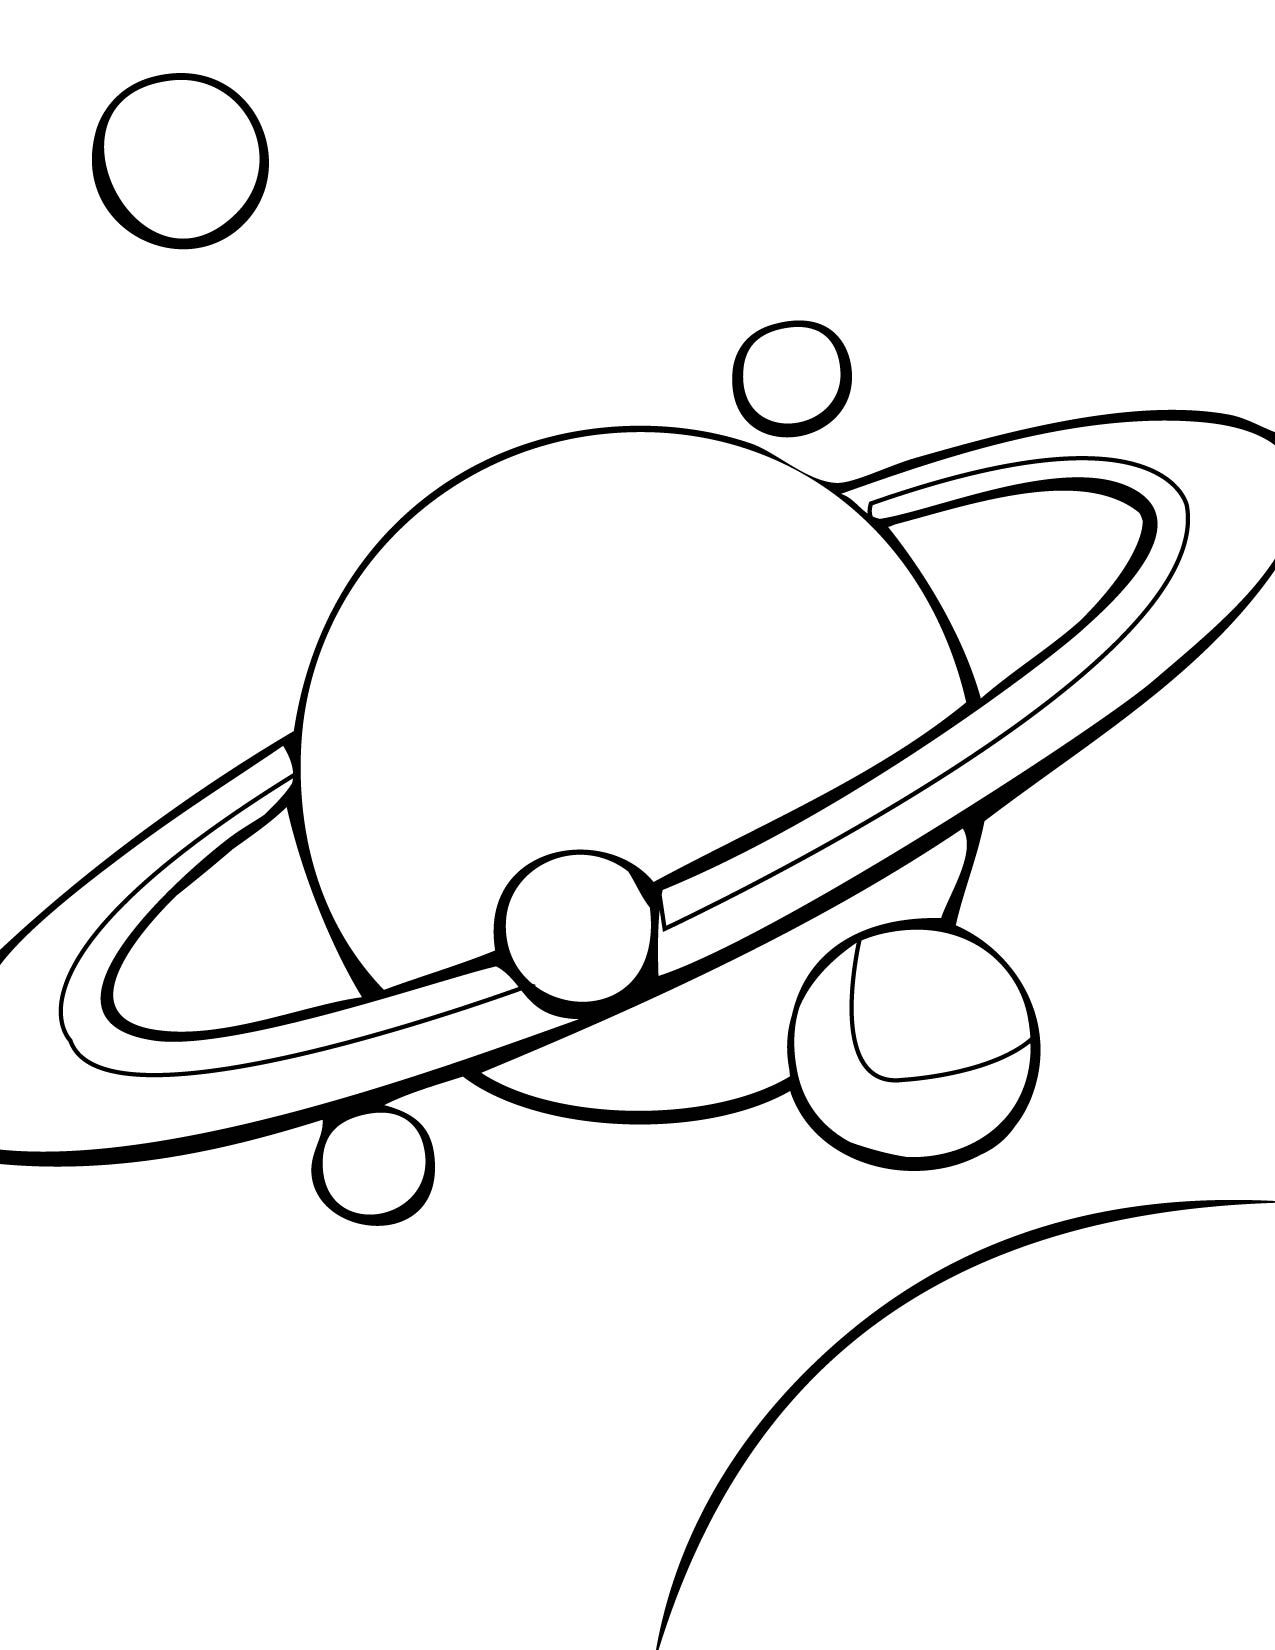 Printable coloring pages planets - Solar System Color Page Printable Solar System Coloring Pages For Kids Amazing Coloring Pages Space Pinterest Solar System Bulletin Board And